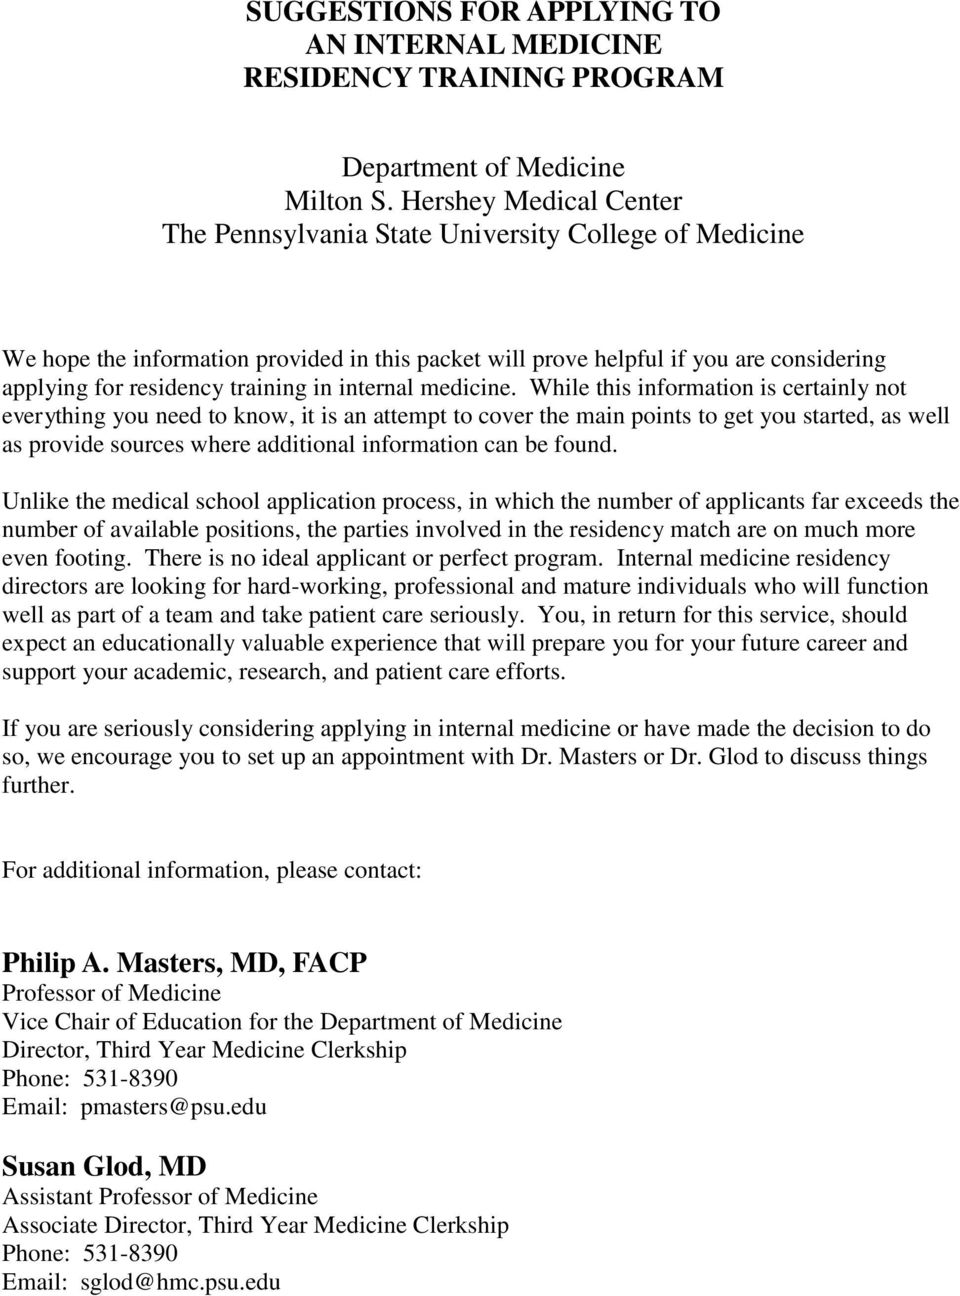 Internal medicine residency essay